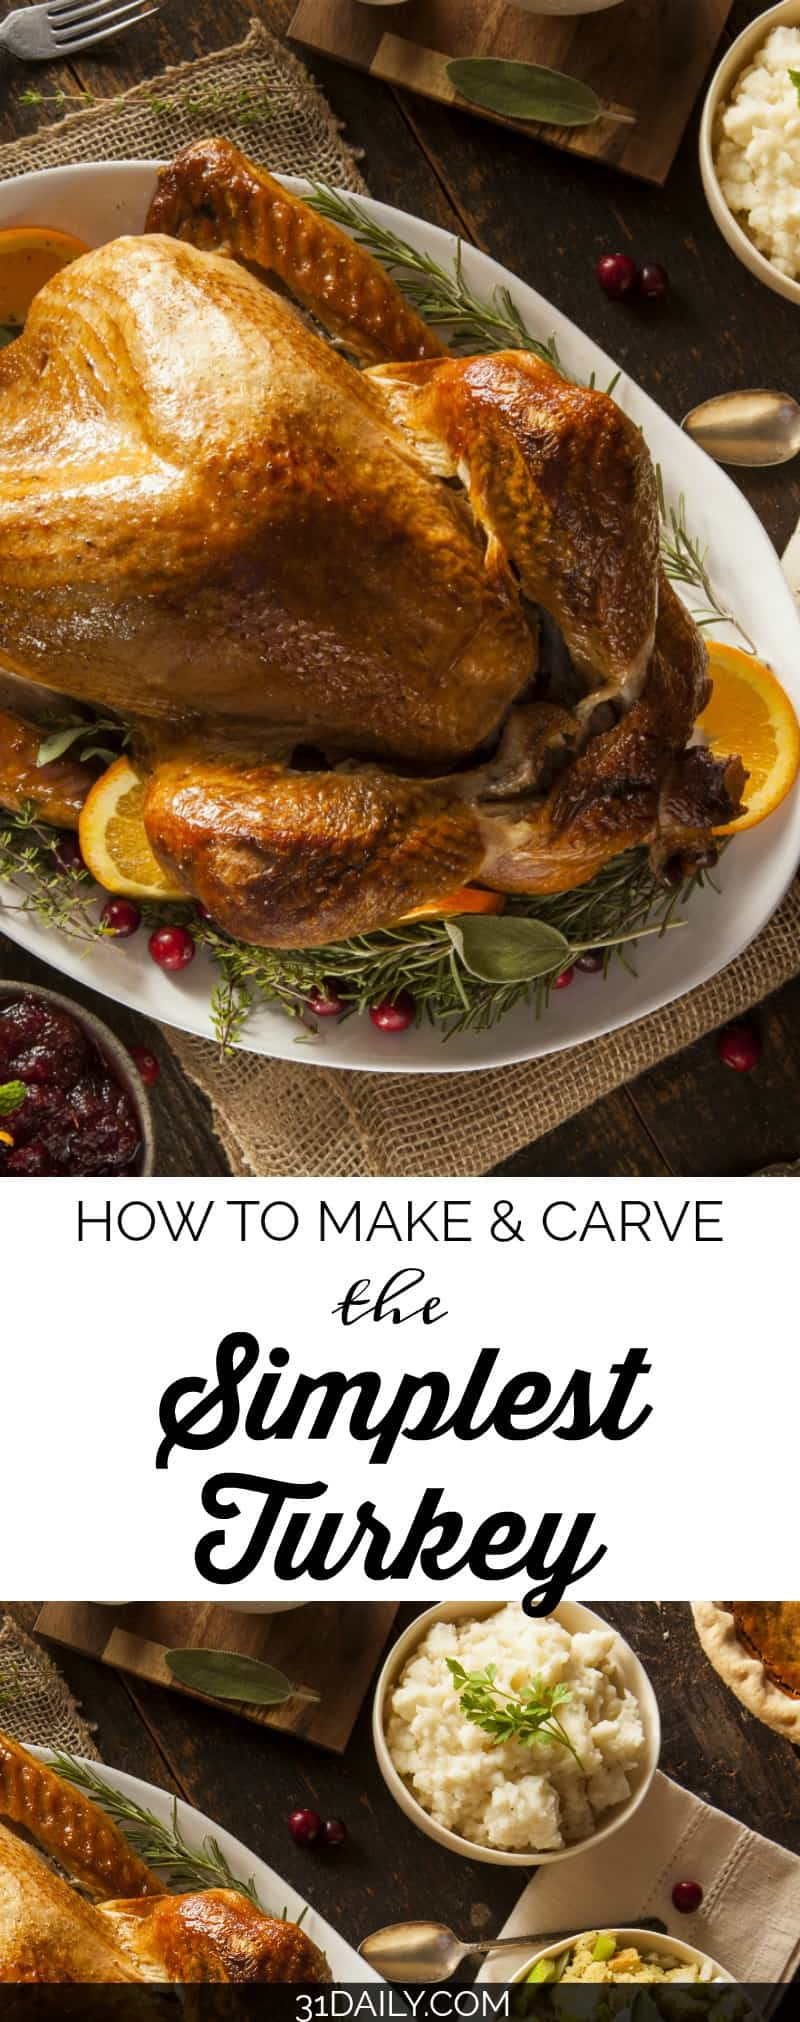 How to Make and Carve the Simplest Turkey | 31Daily.com